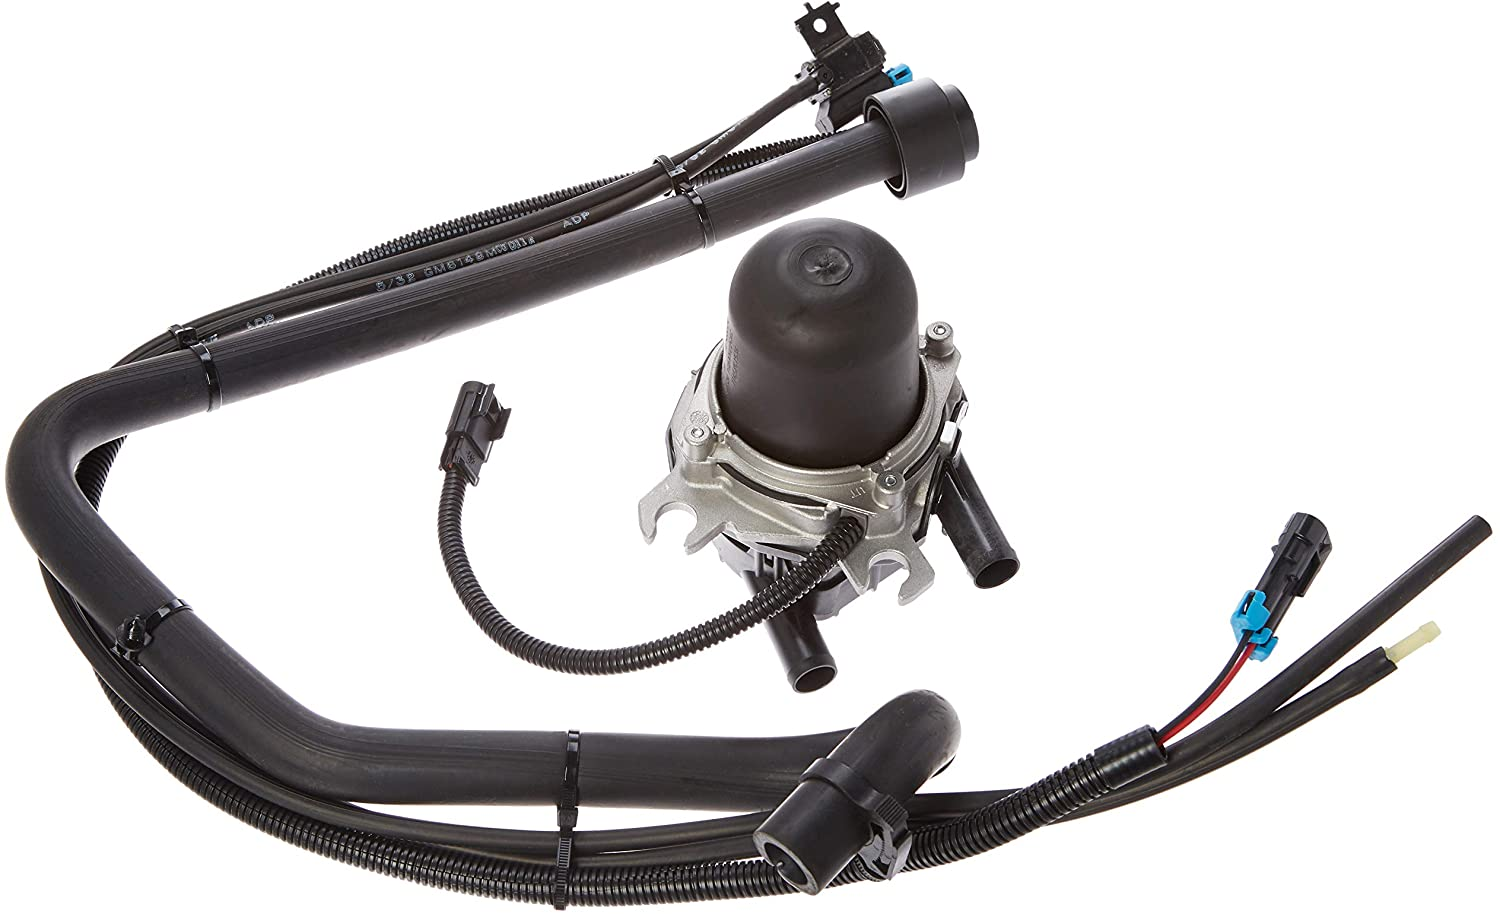 Standard Motor Products AIP1 Air Pump